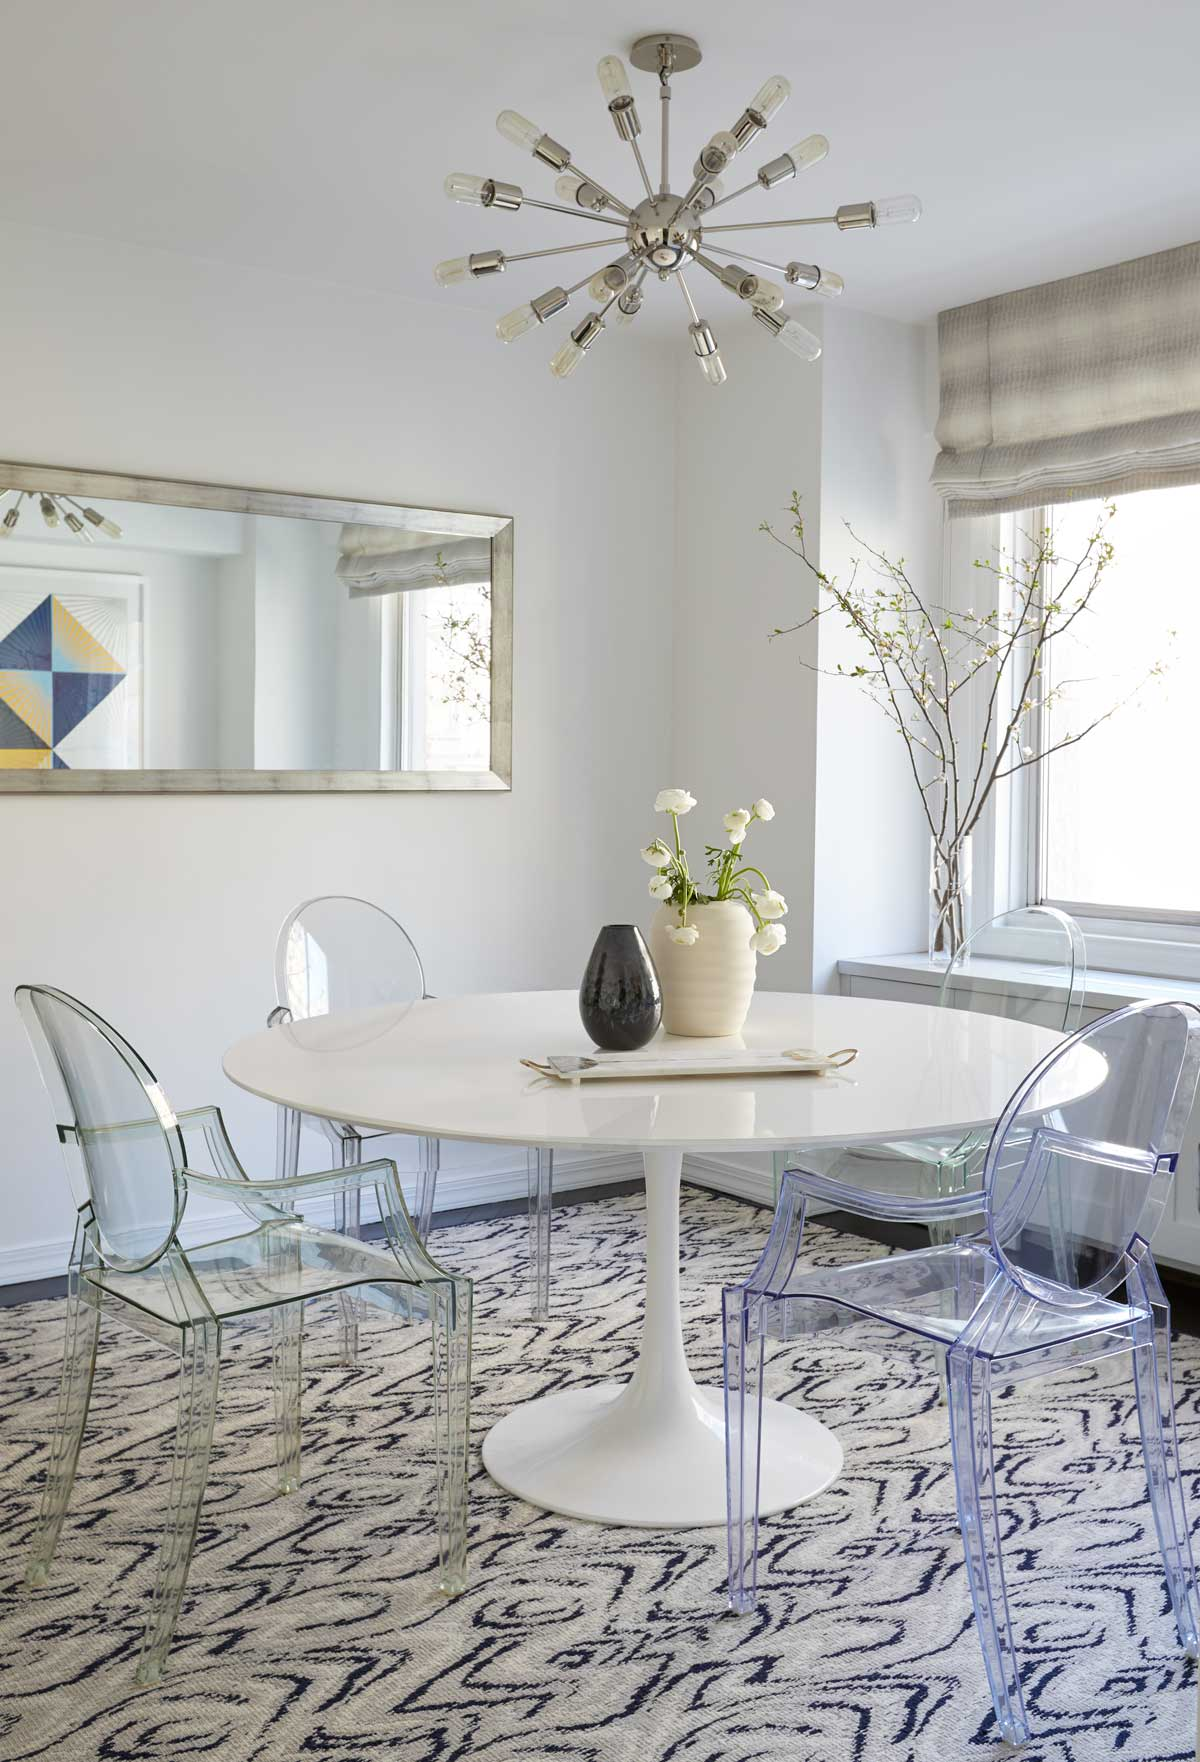 brooke moorhead design lenox hill playful dining area